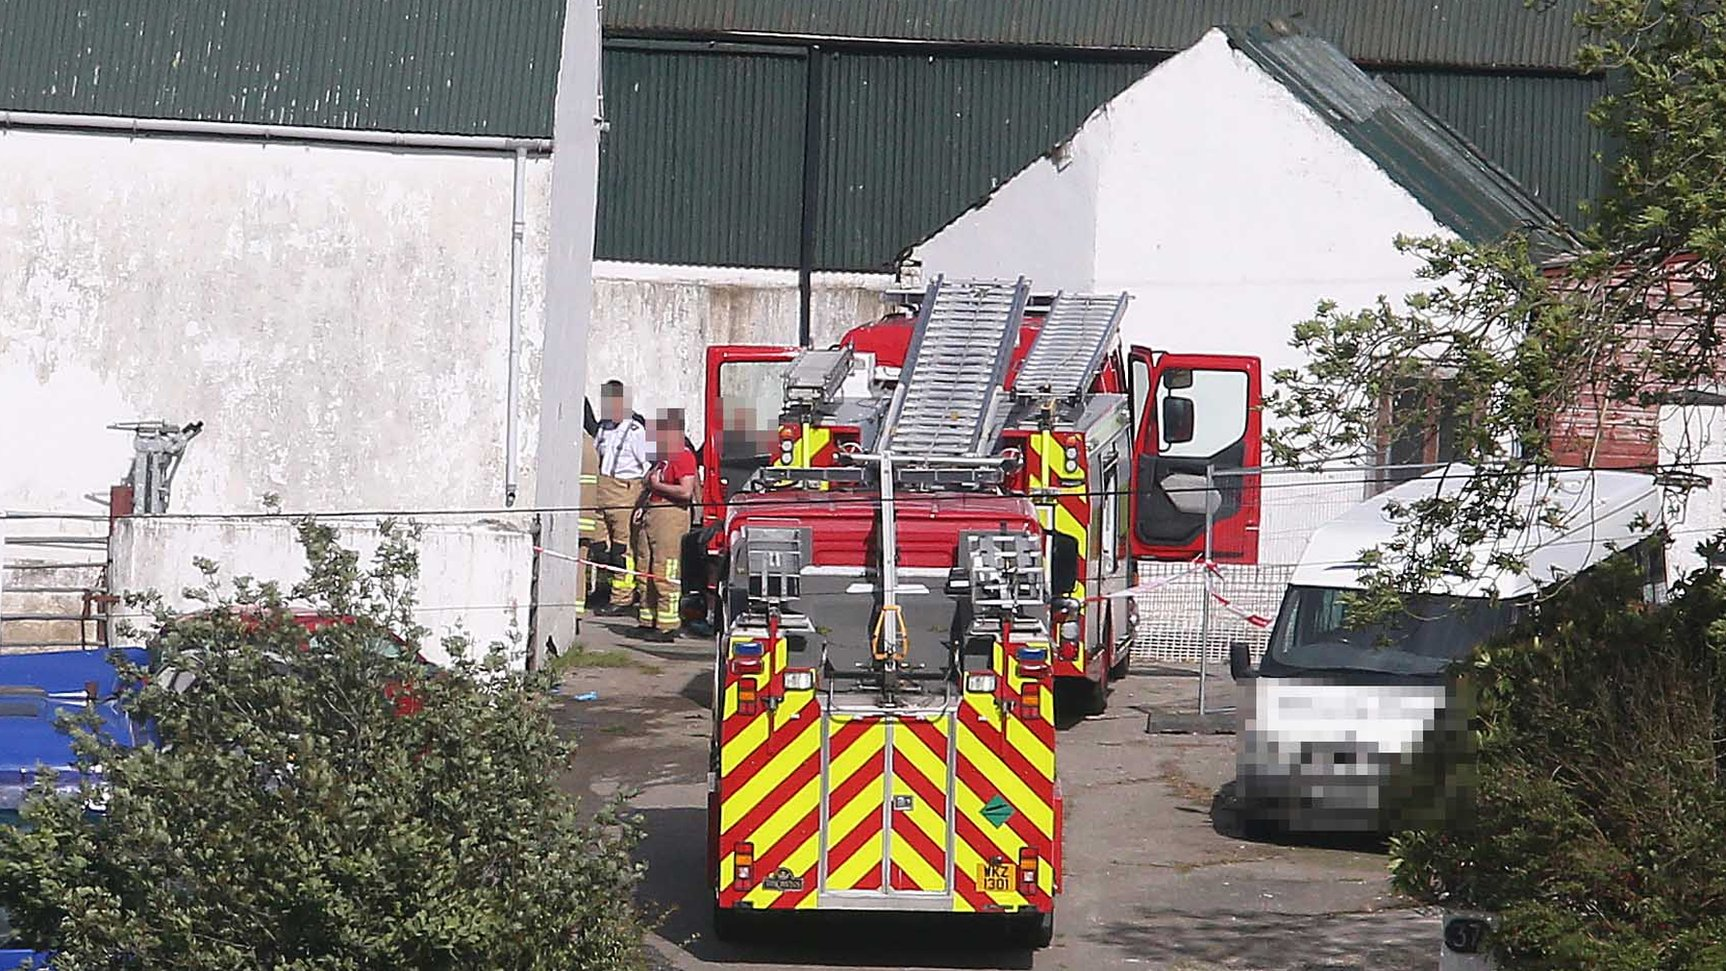 Slurry incident victims remain in critical condition